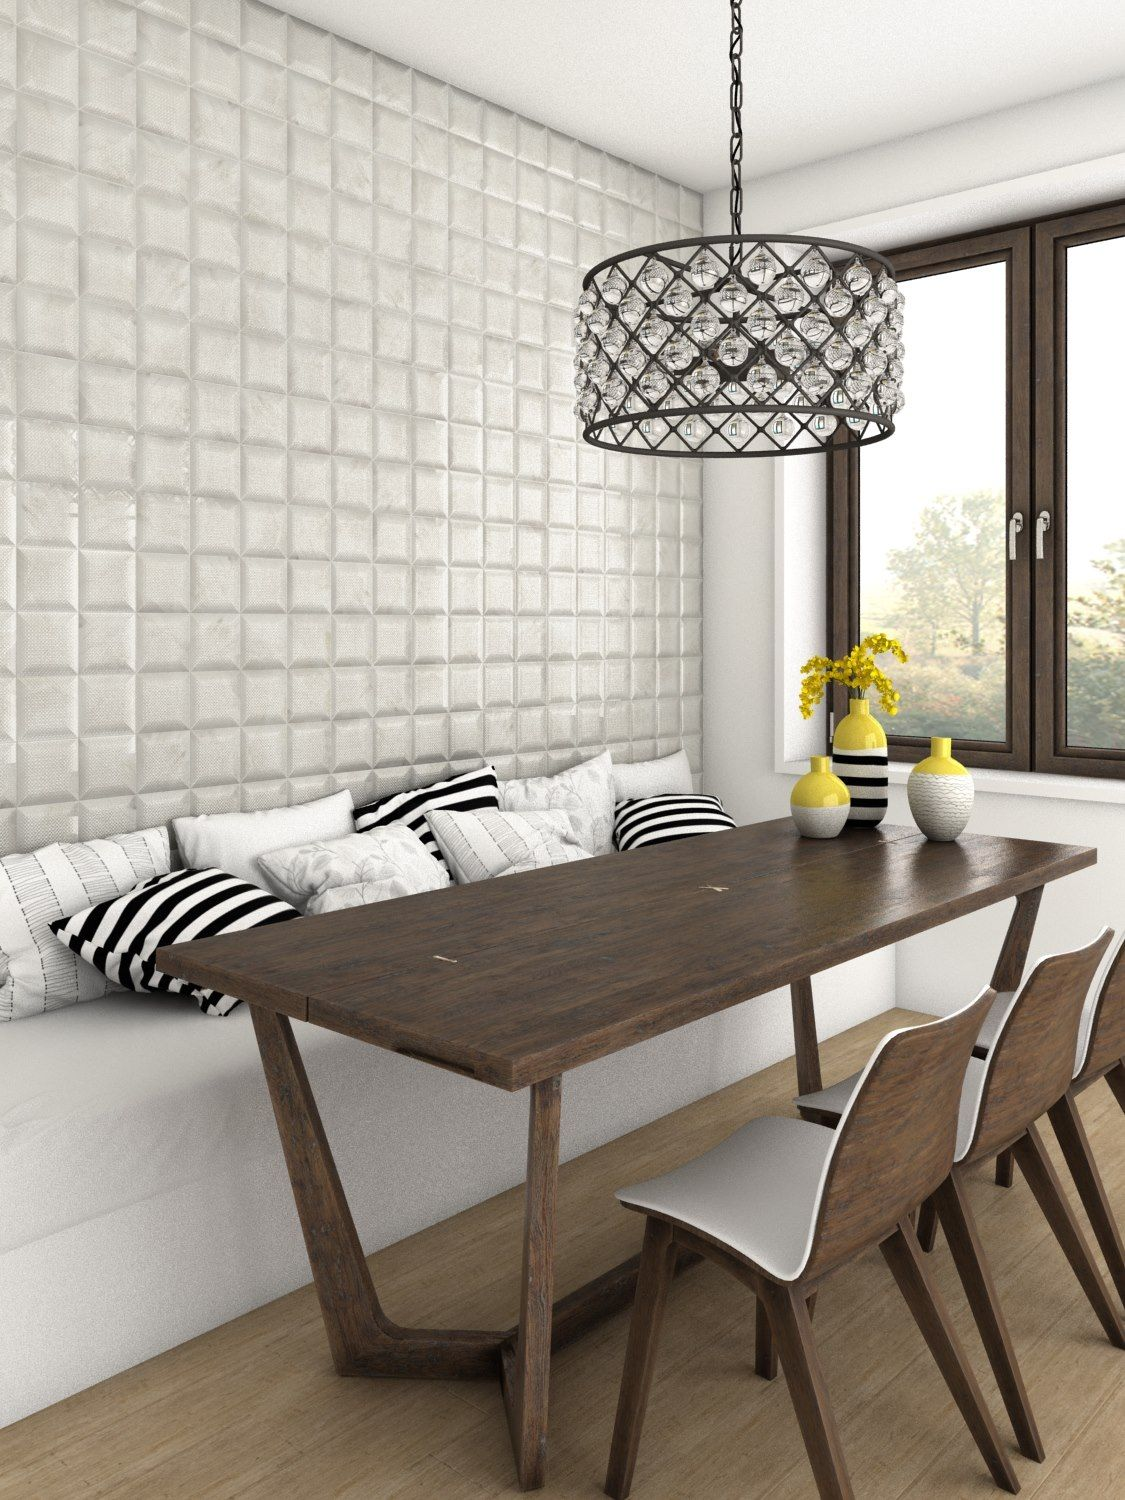 Ceramic Wall Tiles Kitchen Spring Persia Spanisch Ceramic Wall Tiles Are Suitable For Your